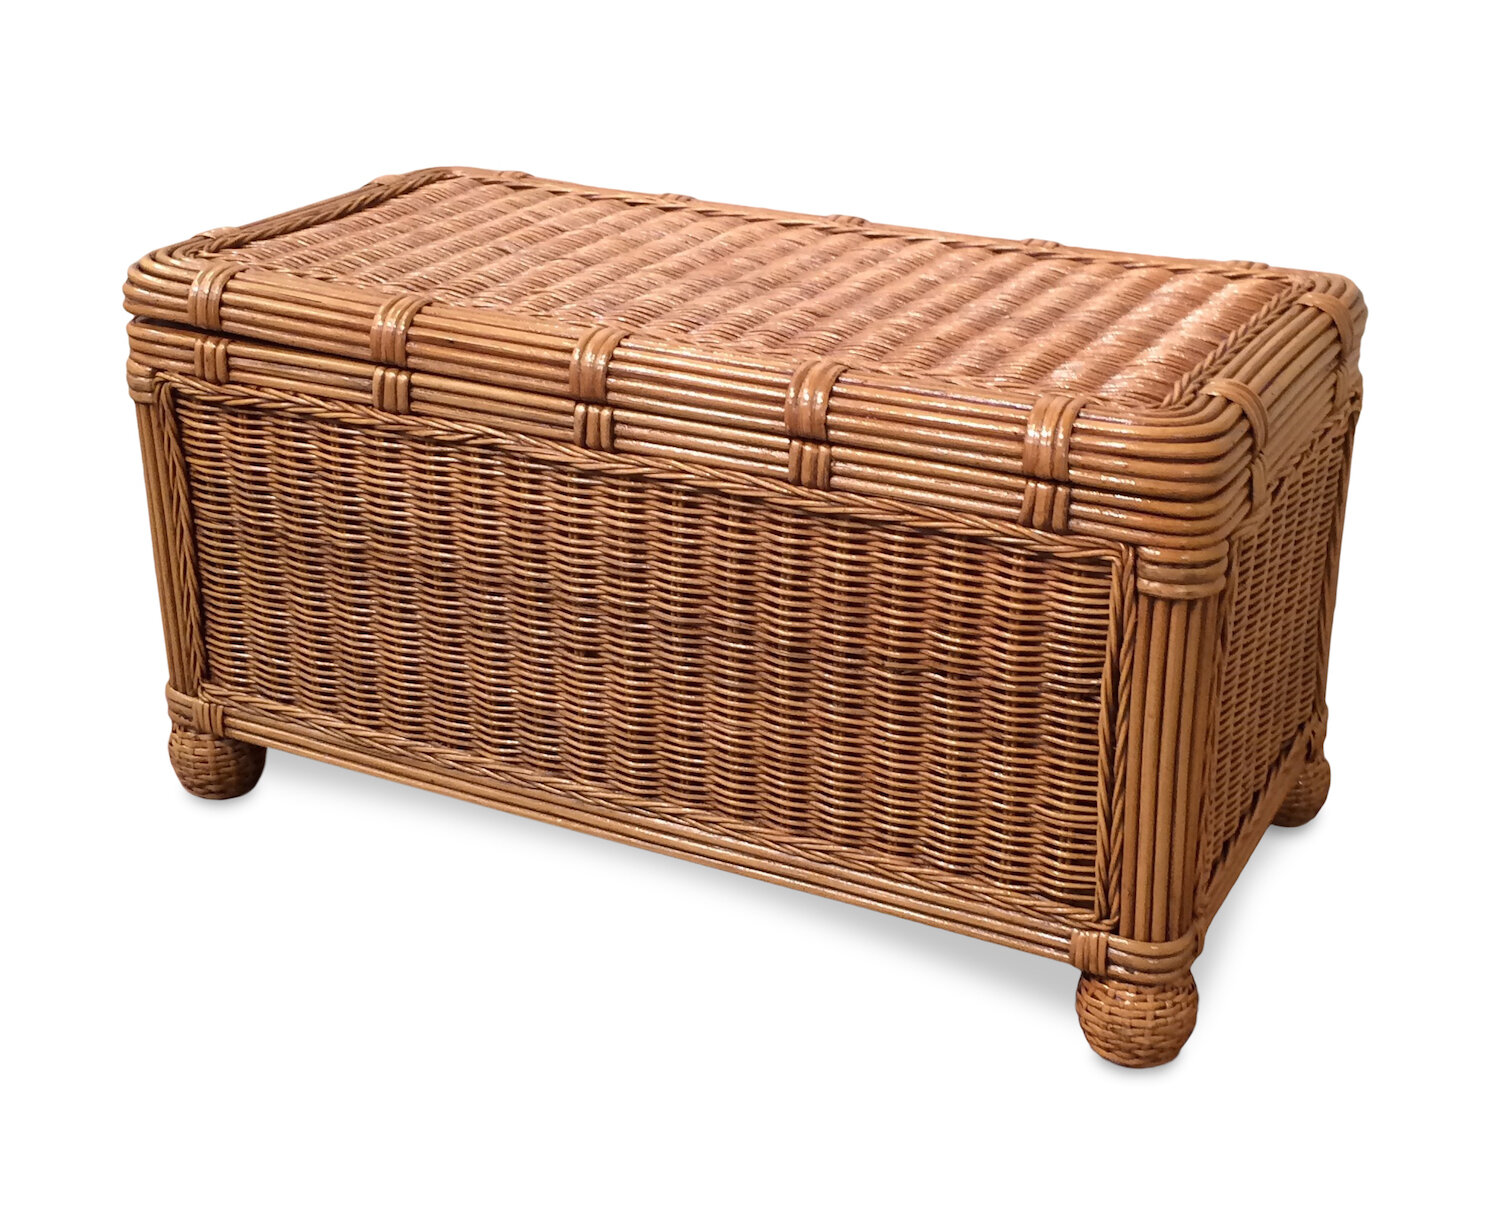 Beachcrest Home Astley Wicker Trunk Reviews Wayfair